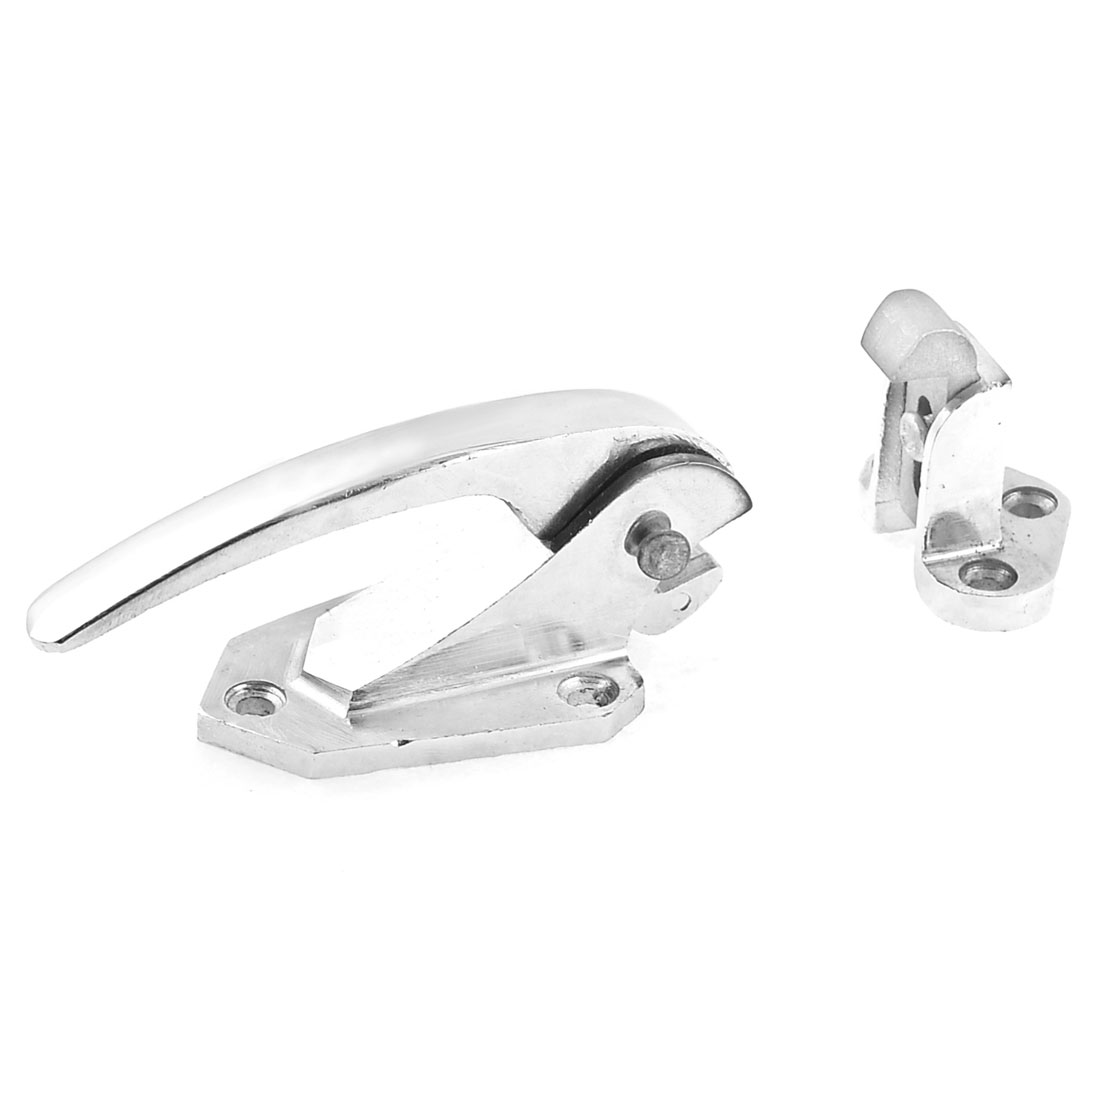 Adjustable Sliver Tone Industrial Oven Door Lock Pull Handle Latch